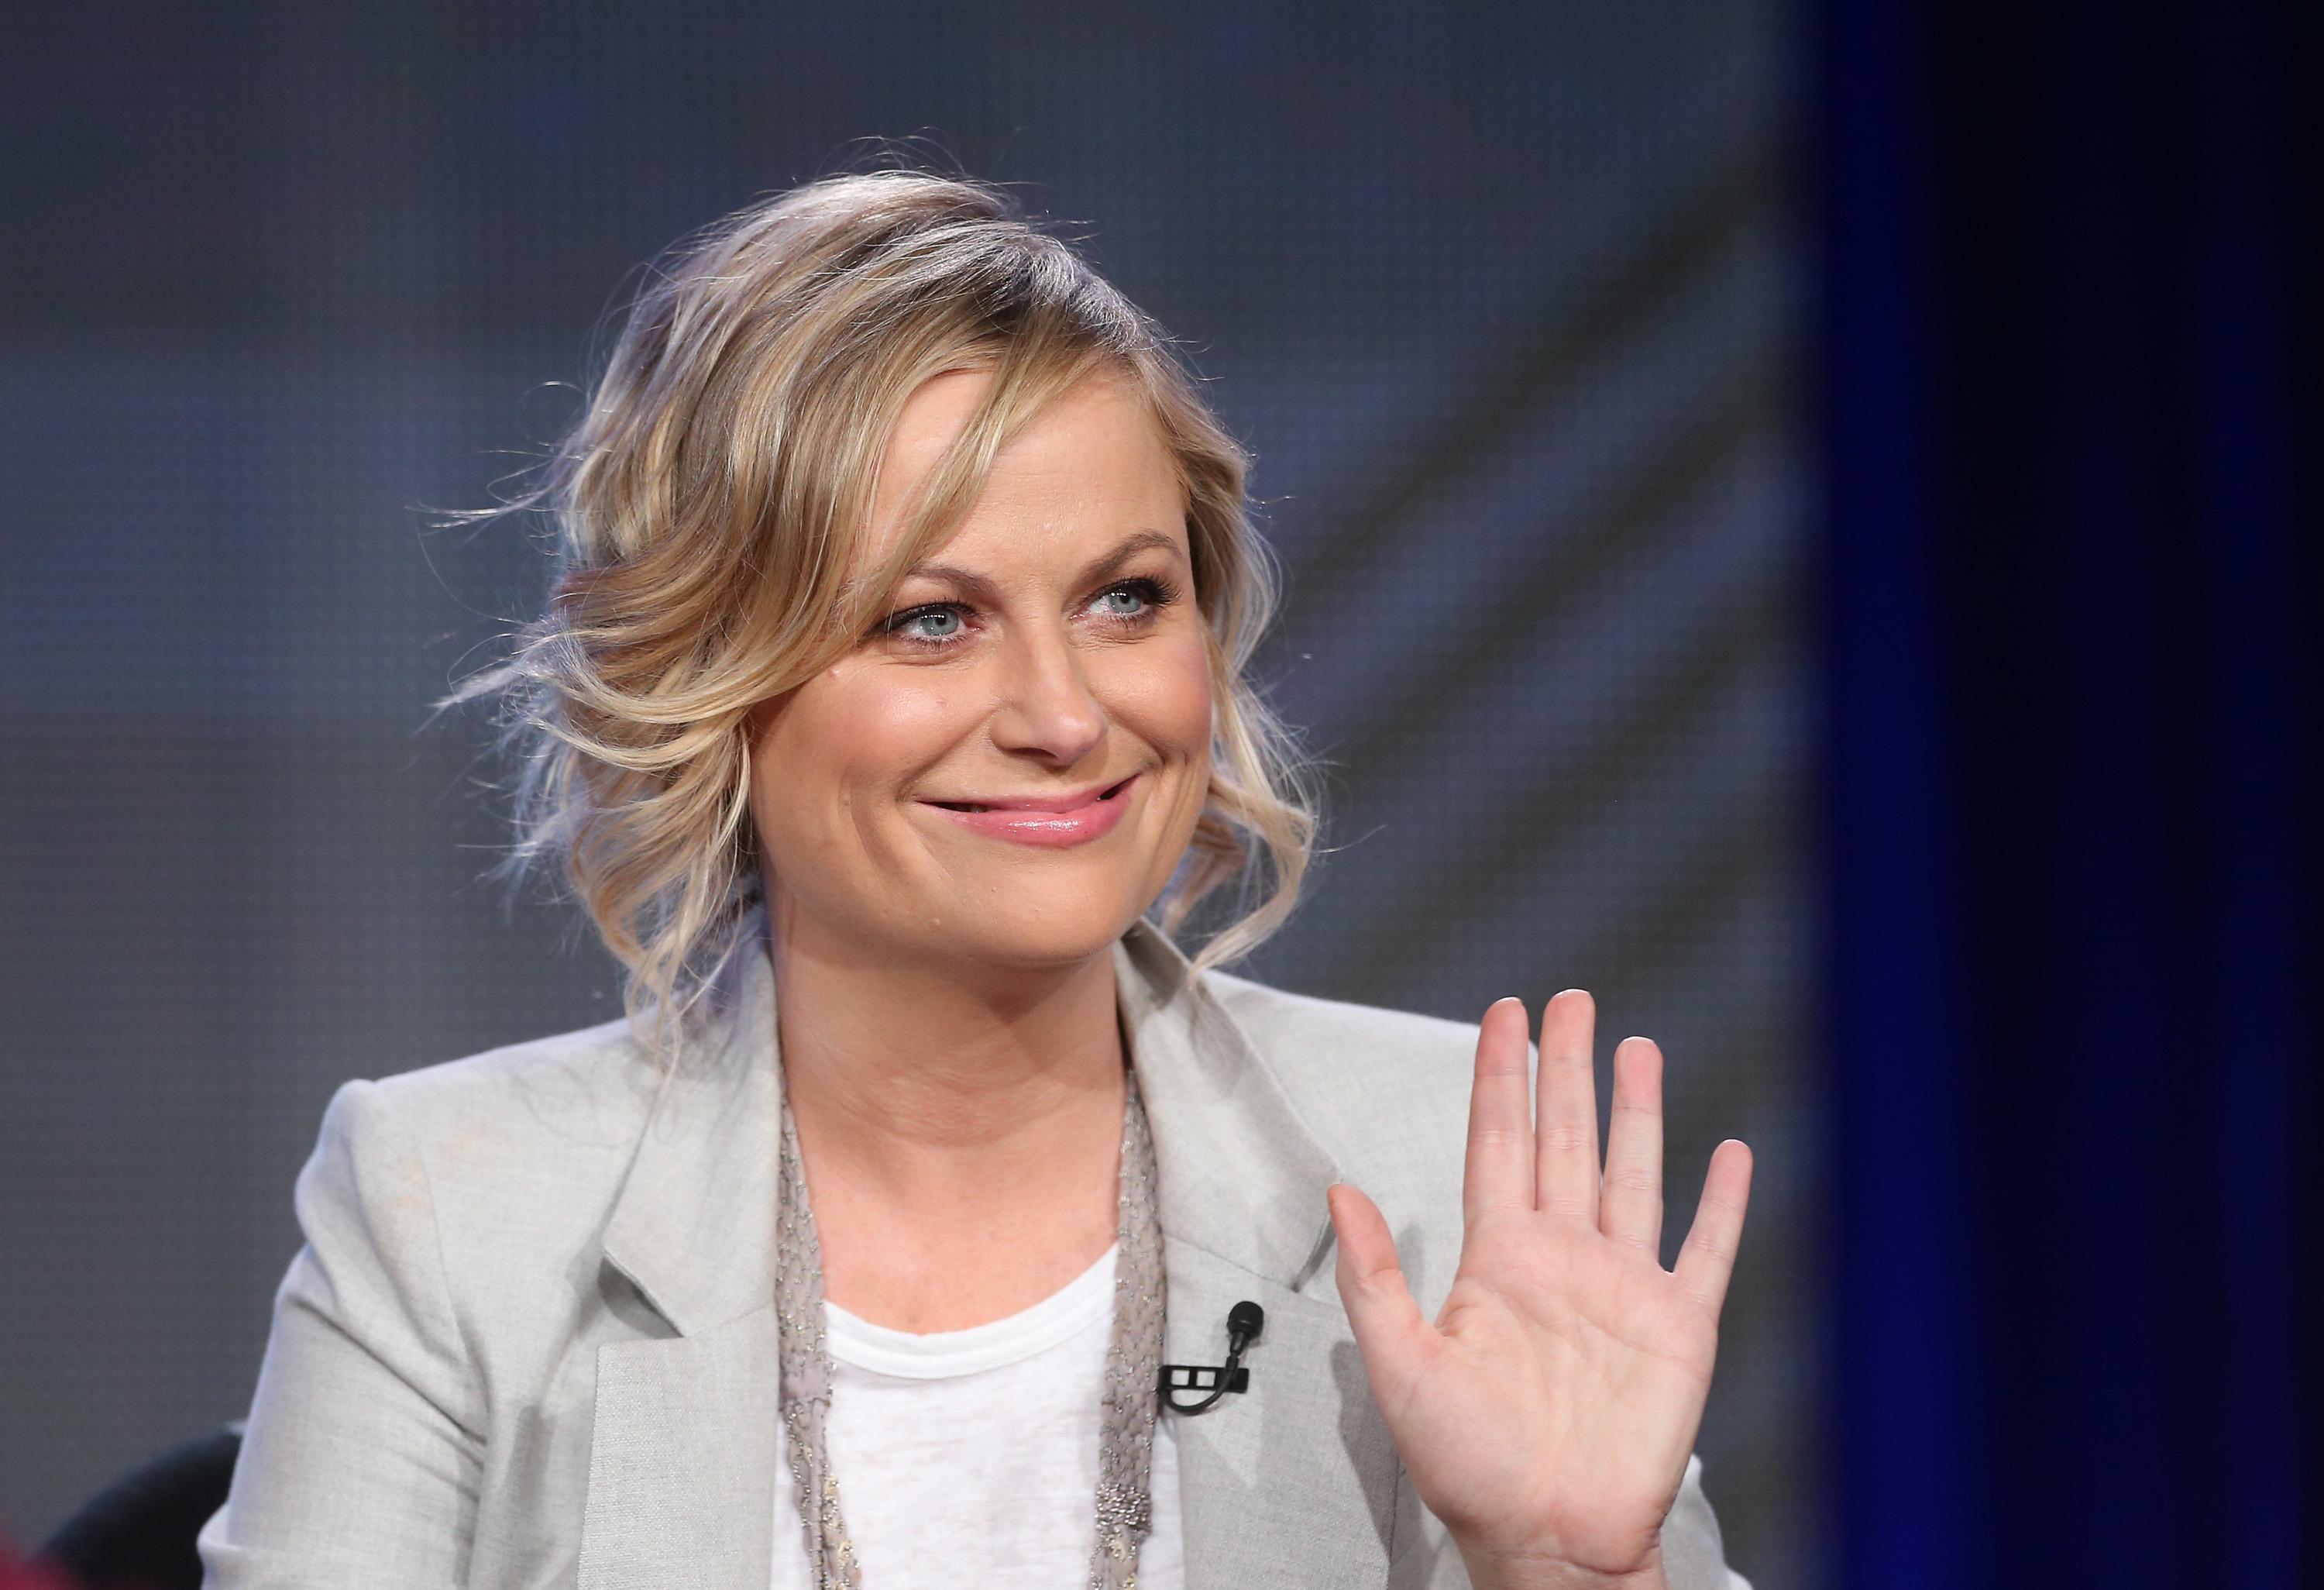 Actress/Executive Producer Amy Poehler speaks onstage during the 'Comedy Central - Broad City' panel discussion at the Viacom portion of the 2014  Winter Television Critics Association tour at the Langham Hotel on January 10, 2014 in Pasadena, Calif.